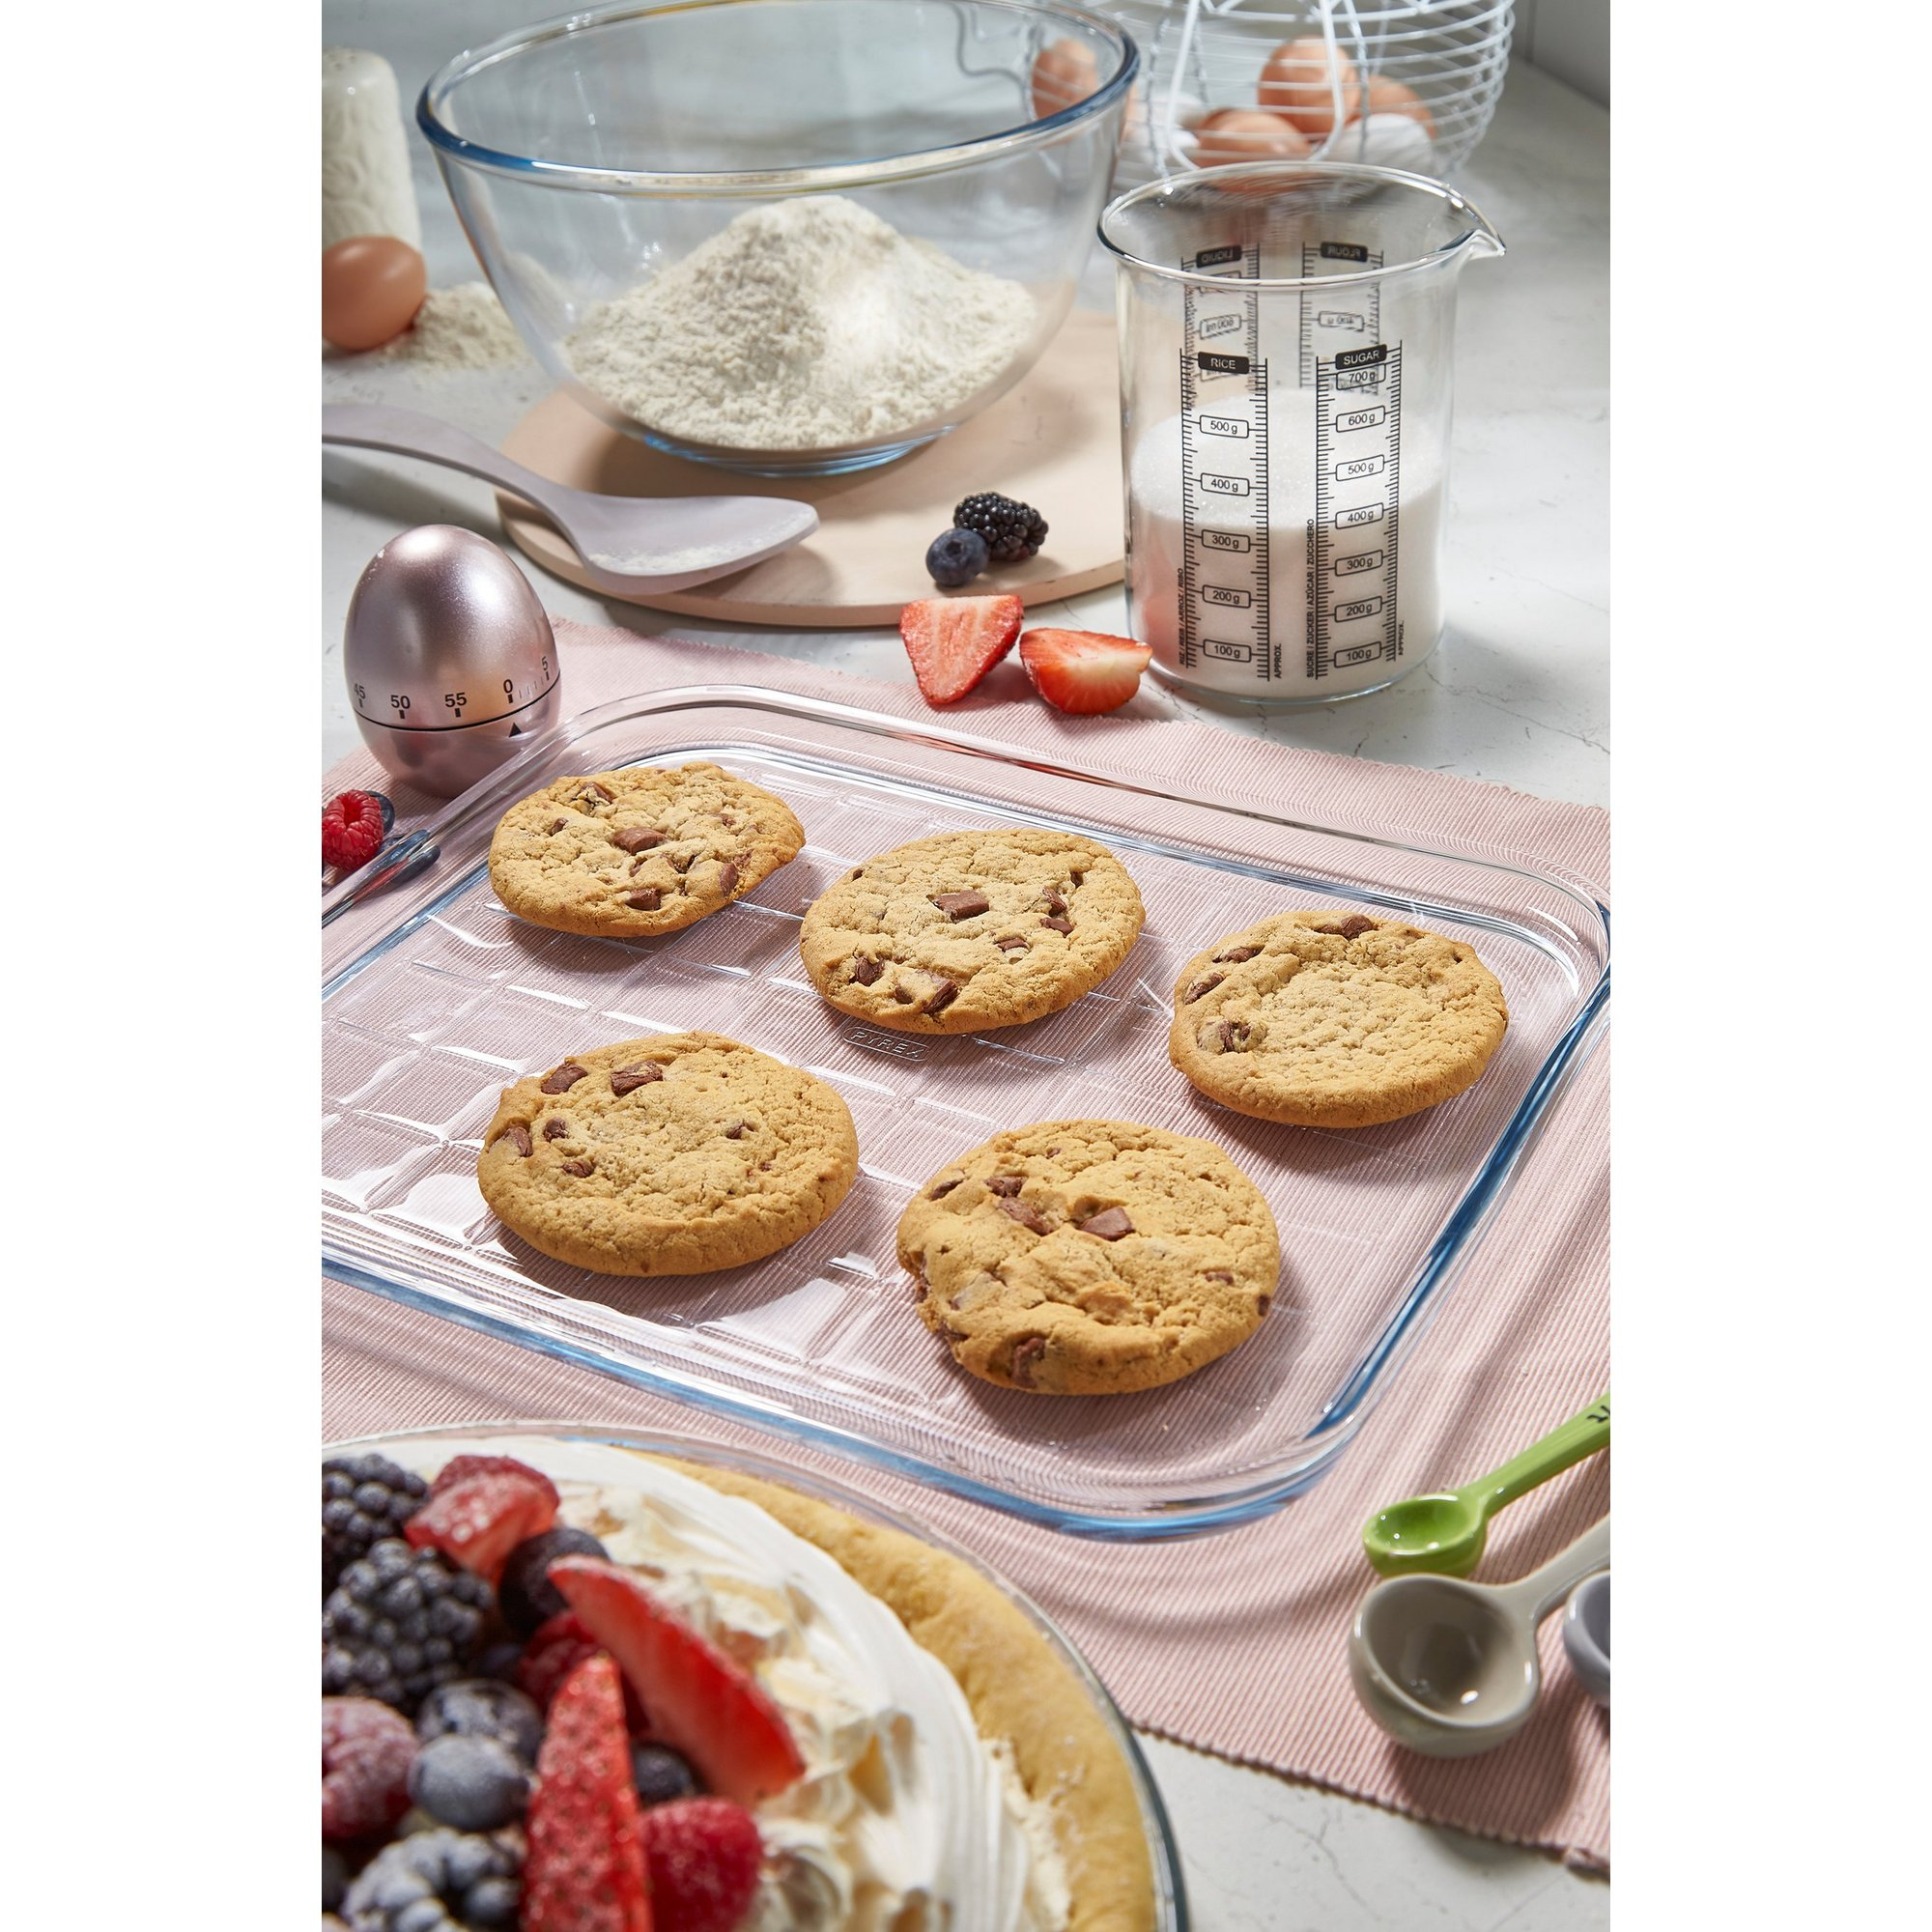 Image of Pyrex Bake and Enjoy Glass Baking Tray